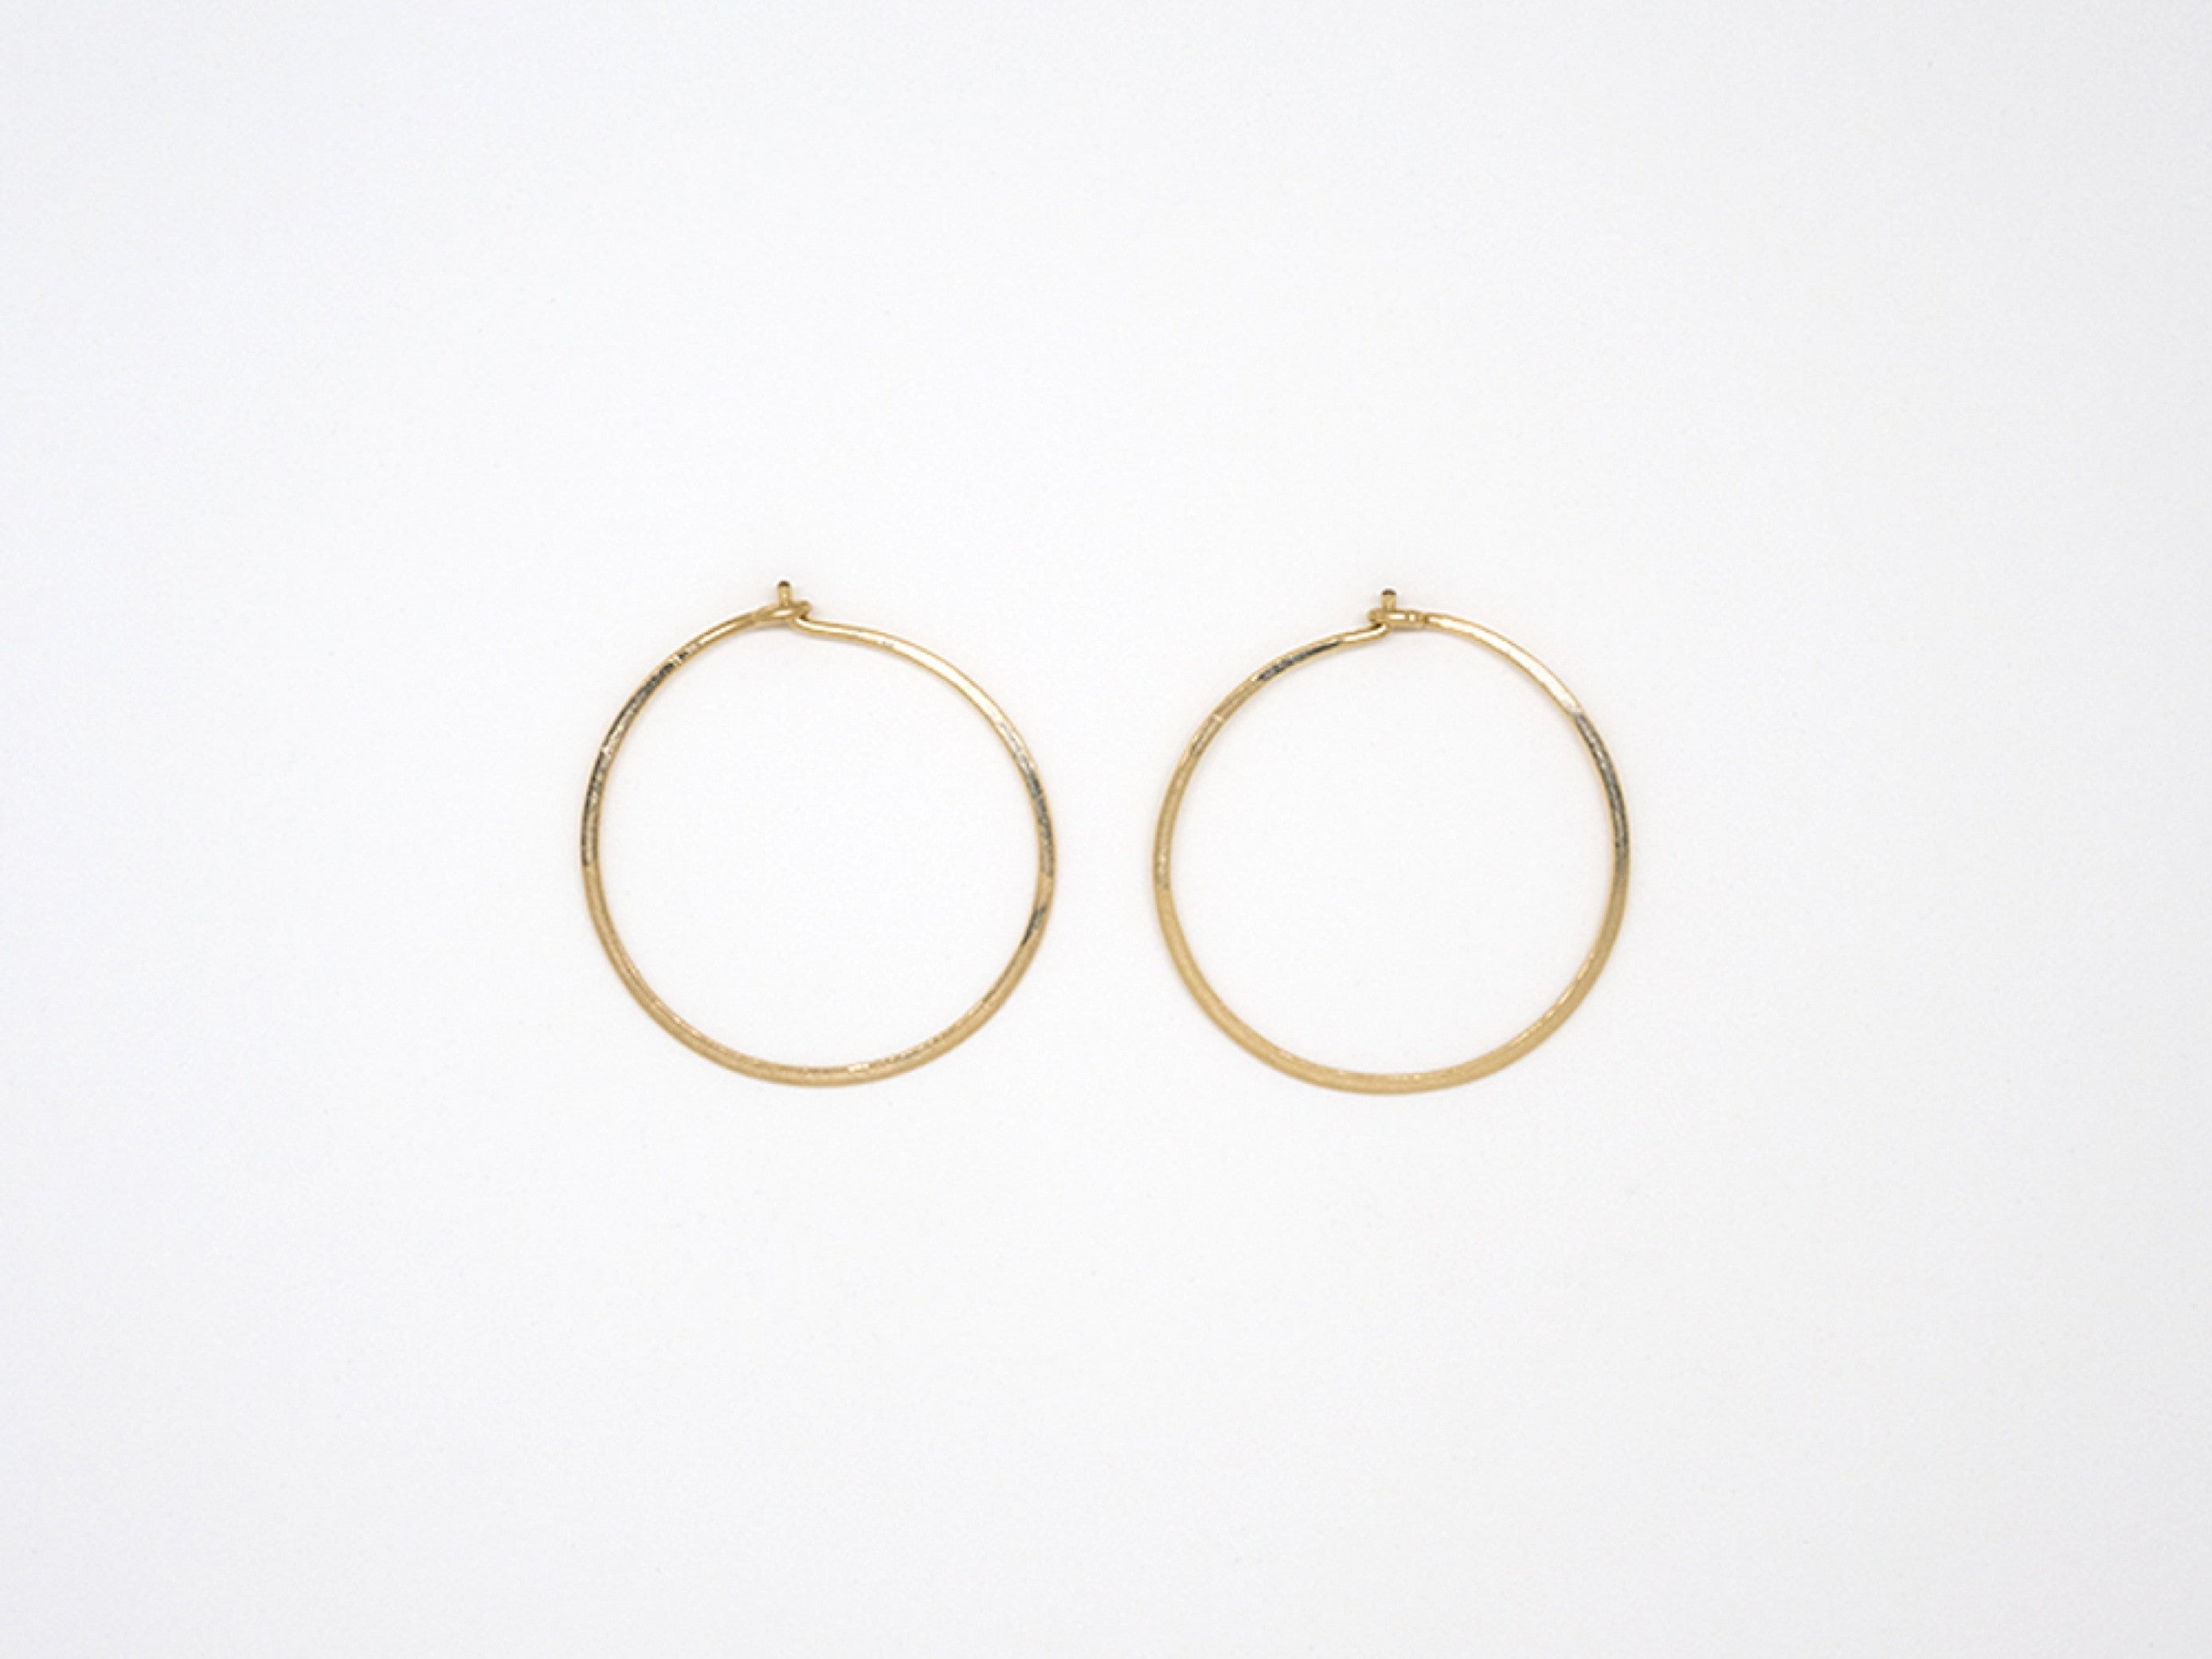 Small Gold Filled Round Hoops - E1689